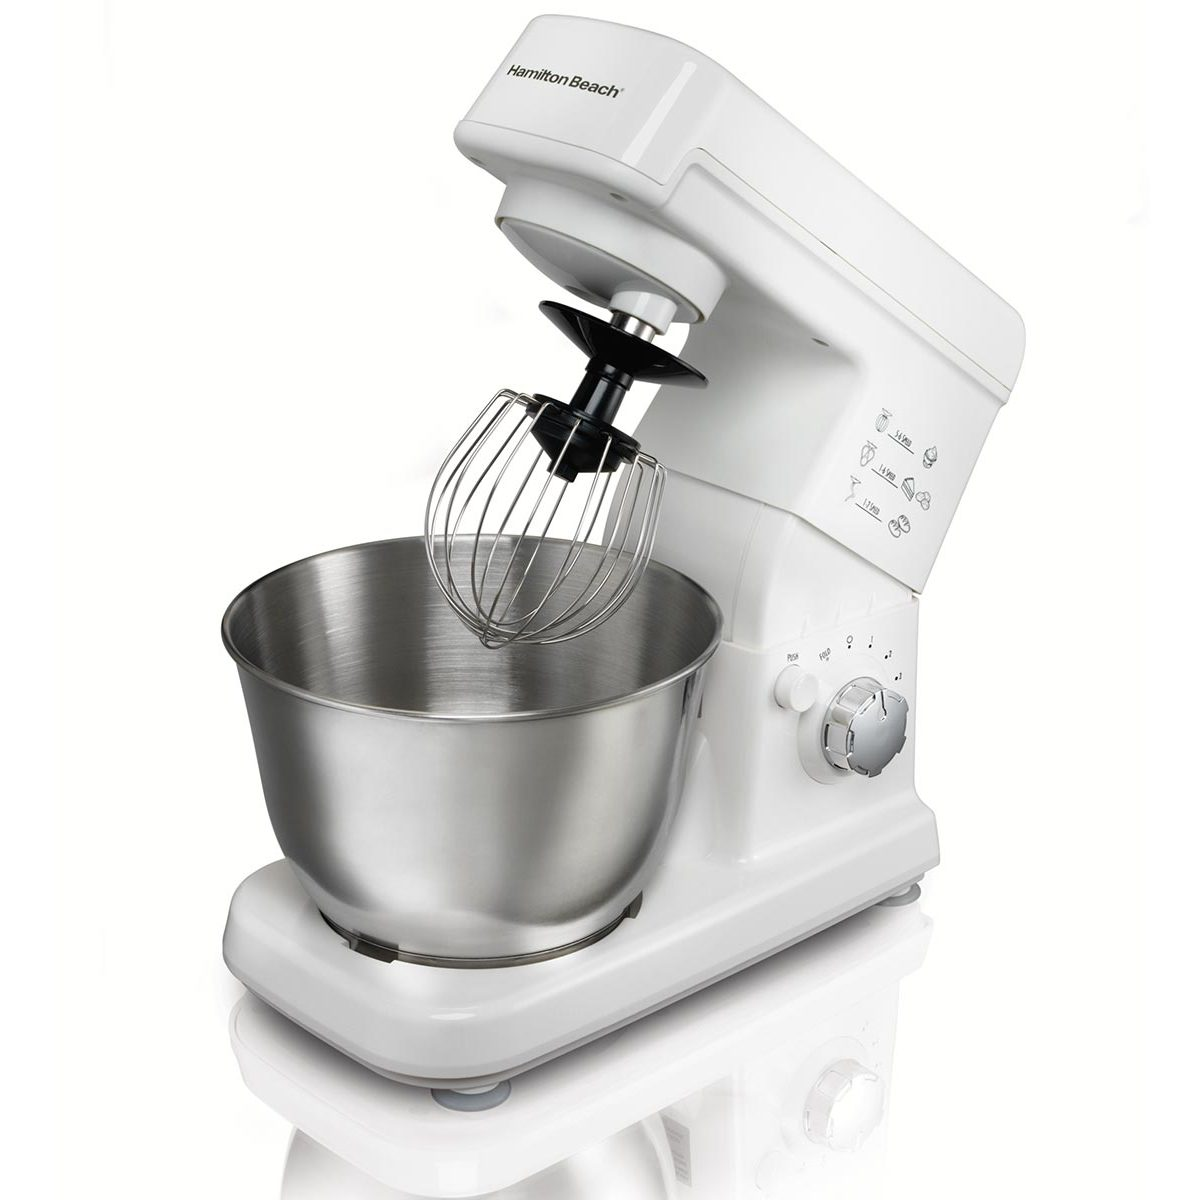 6 Speed Stand Mixer (63329)